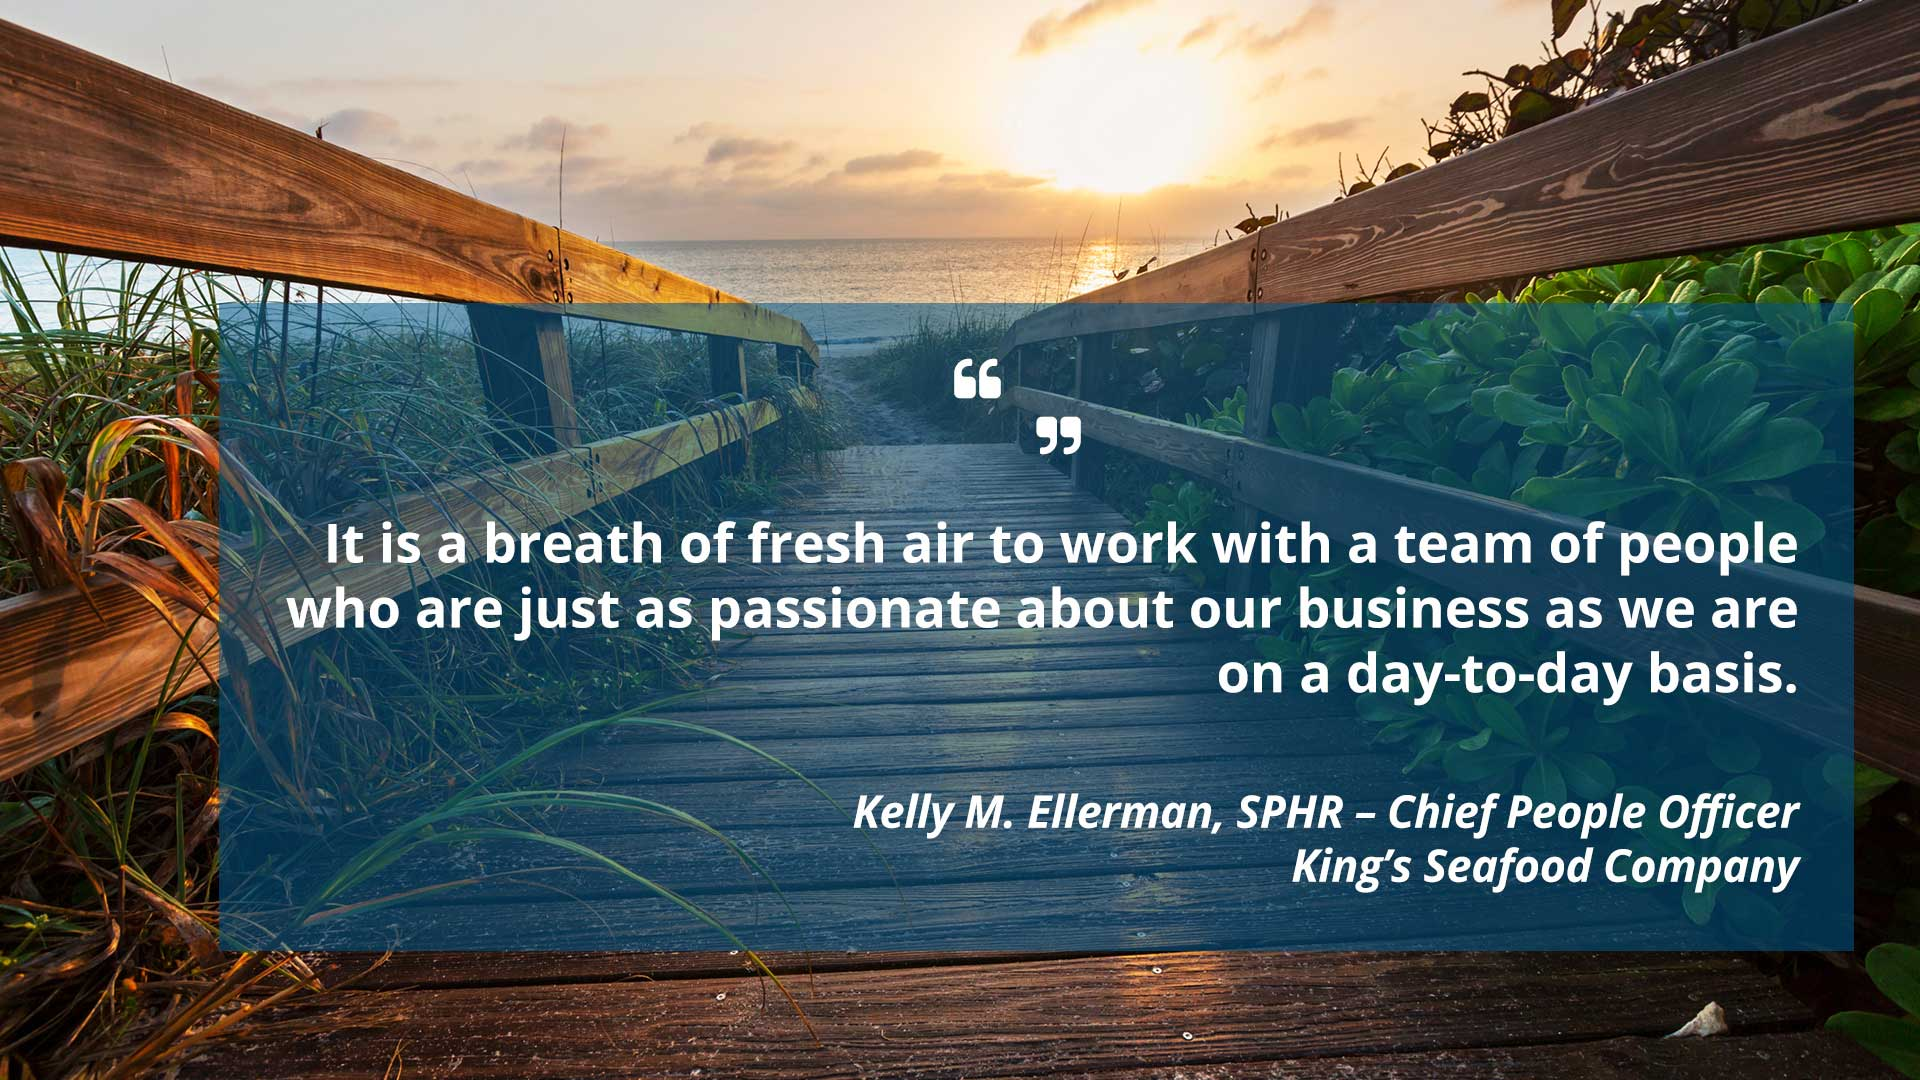 It is a breath of fresh air to work with a team of people who are just as passionate about our business as we are on a day-to-day basis. 